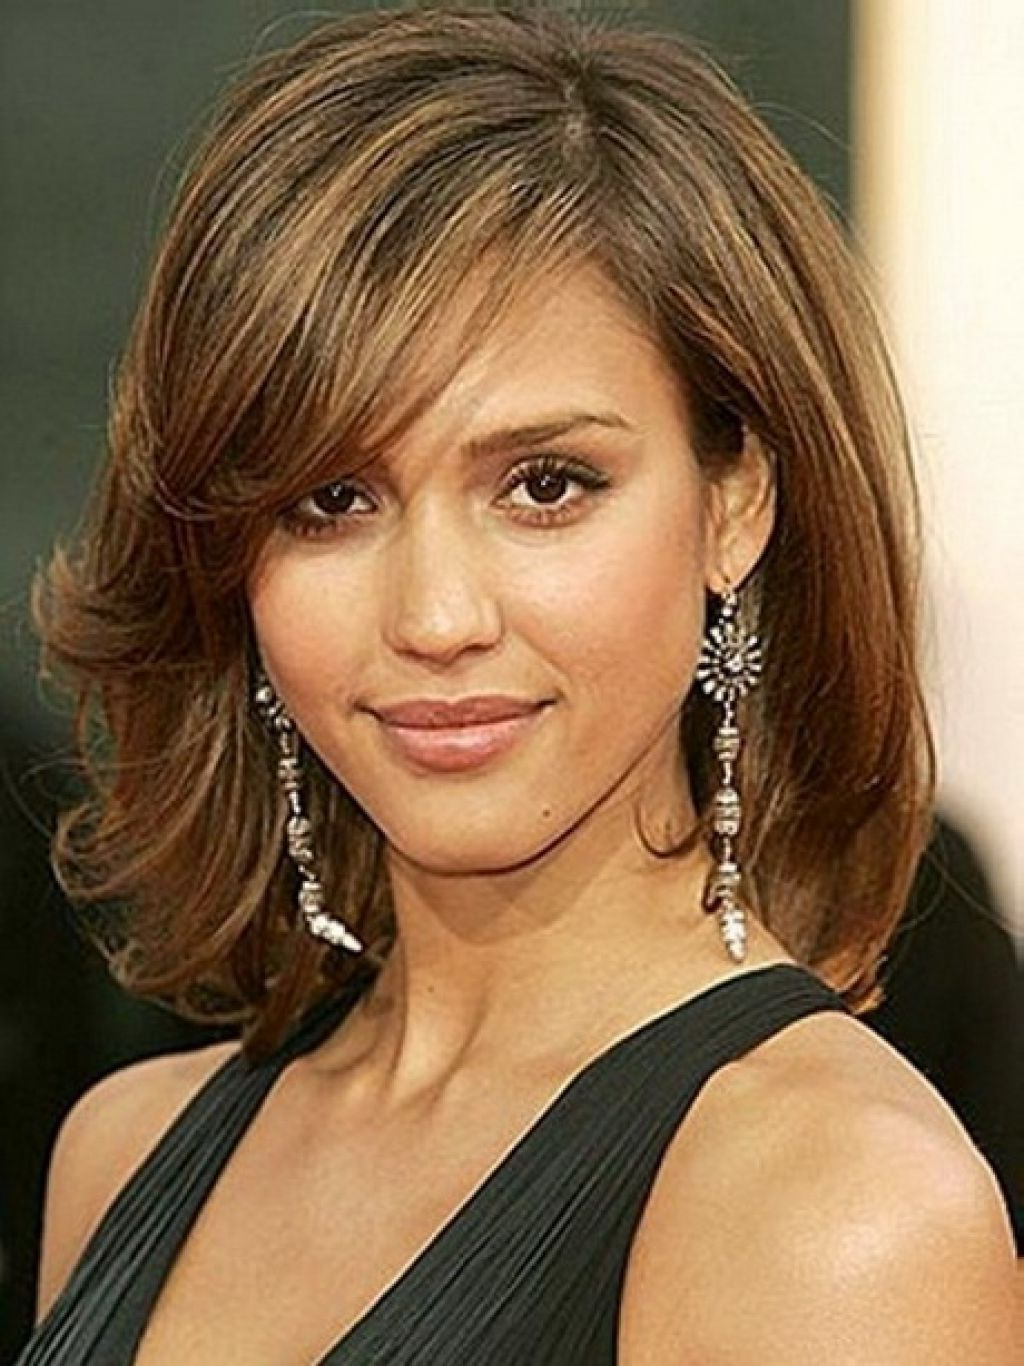 Medium Hairstyles For Women With Round Faces – Hairstyle For Women & Man Throughout Favorite Womens Medium Haircuts For Round Faces (View 5 of 20)